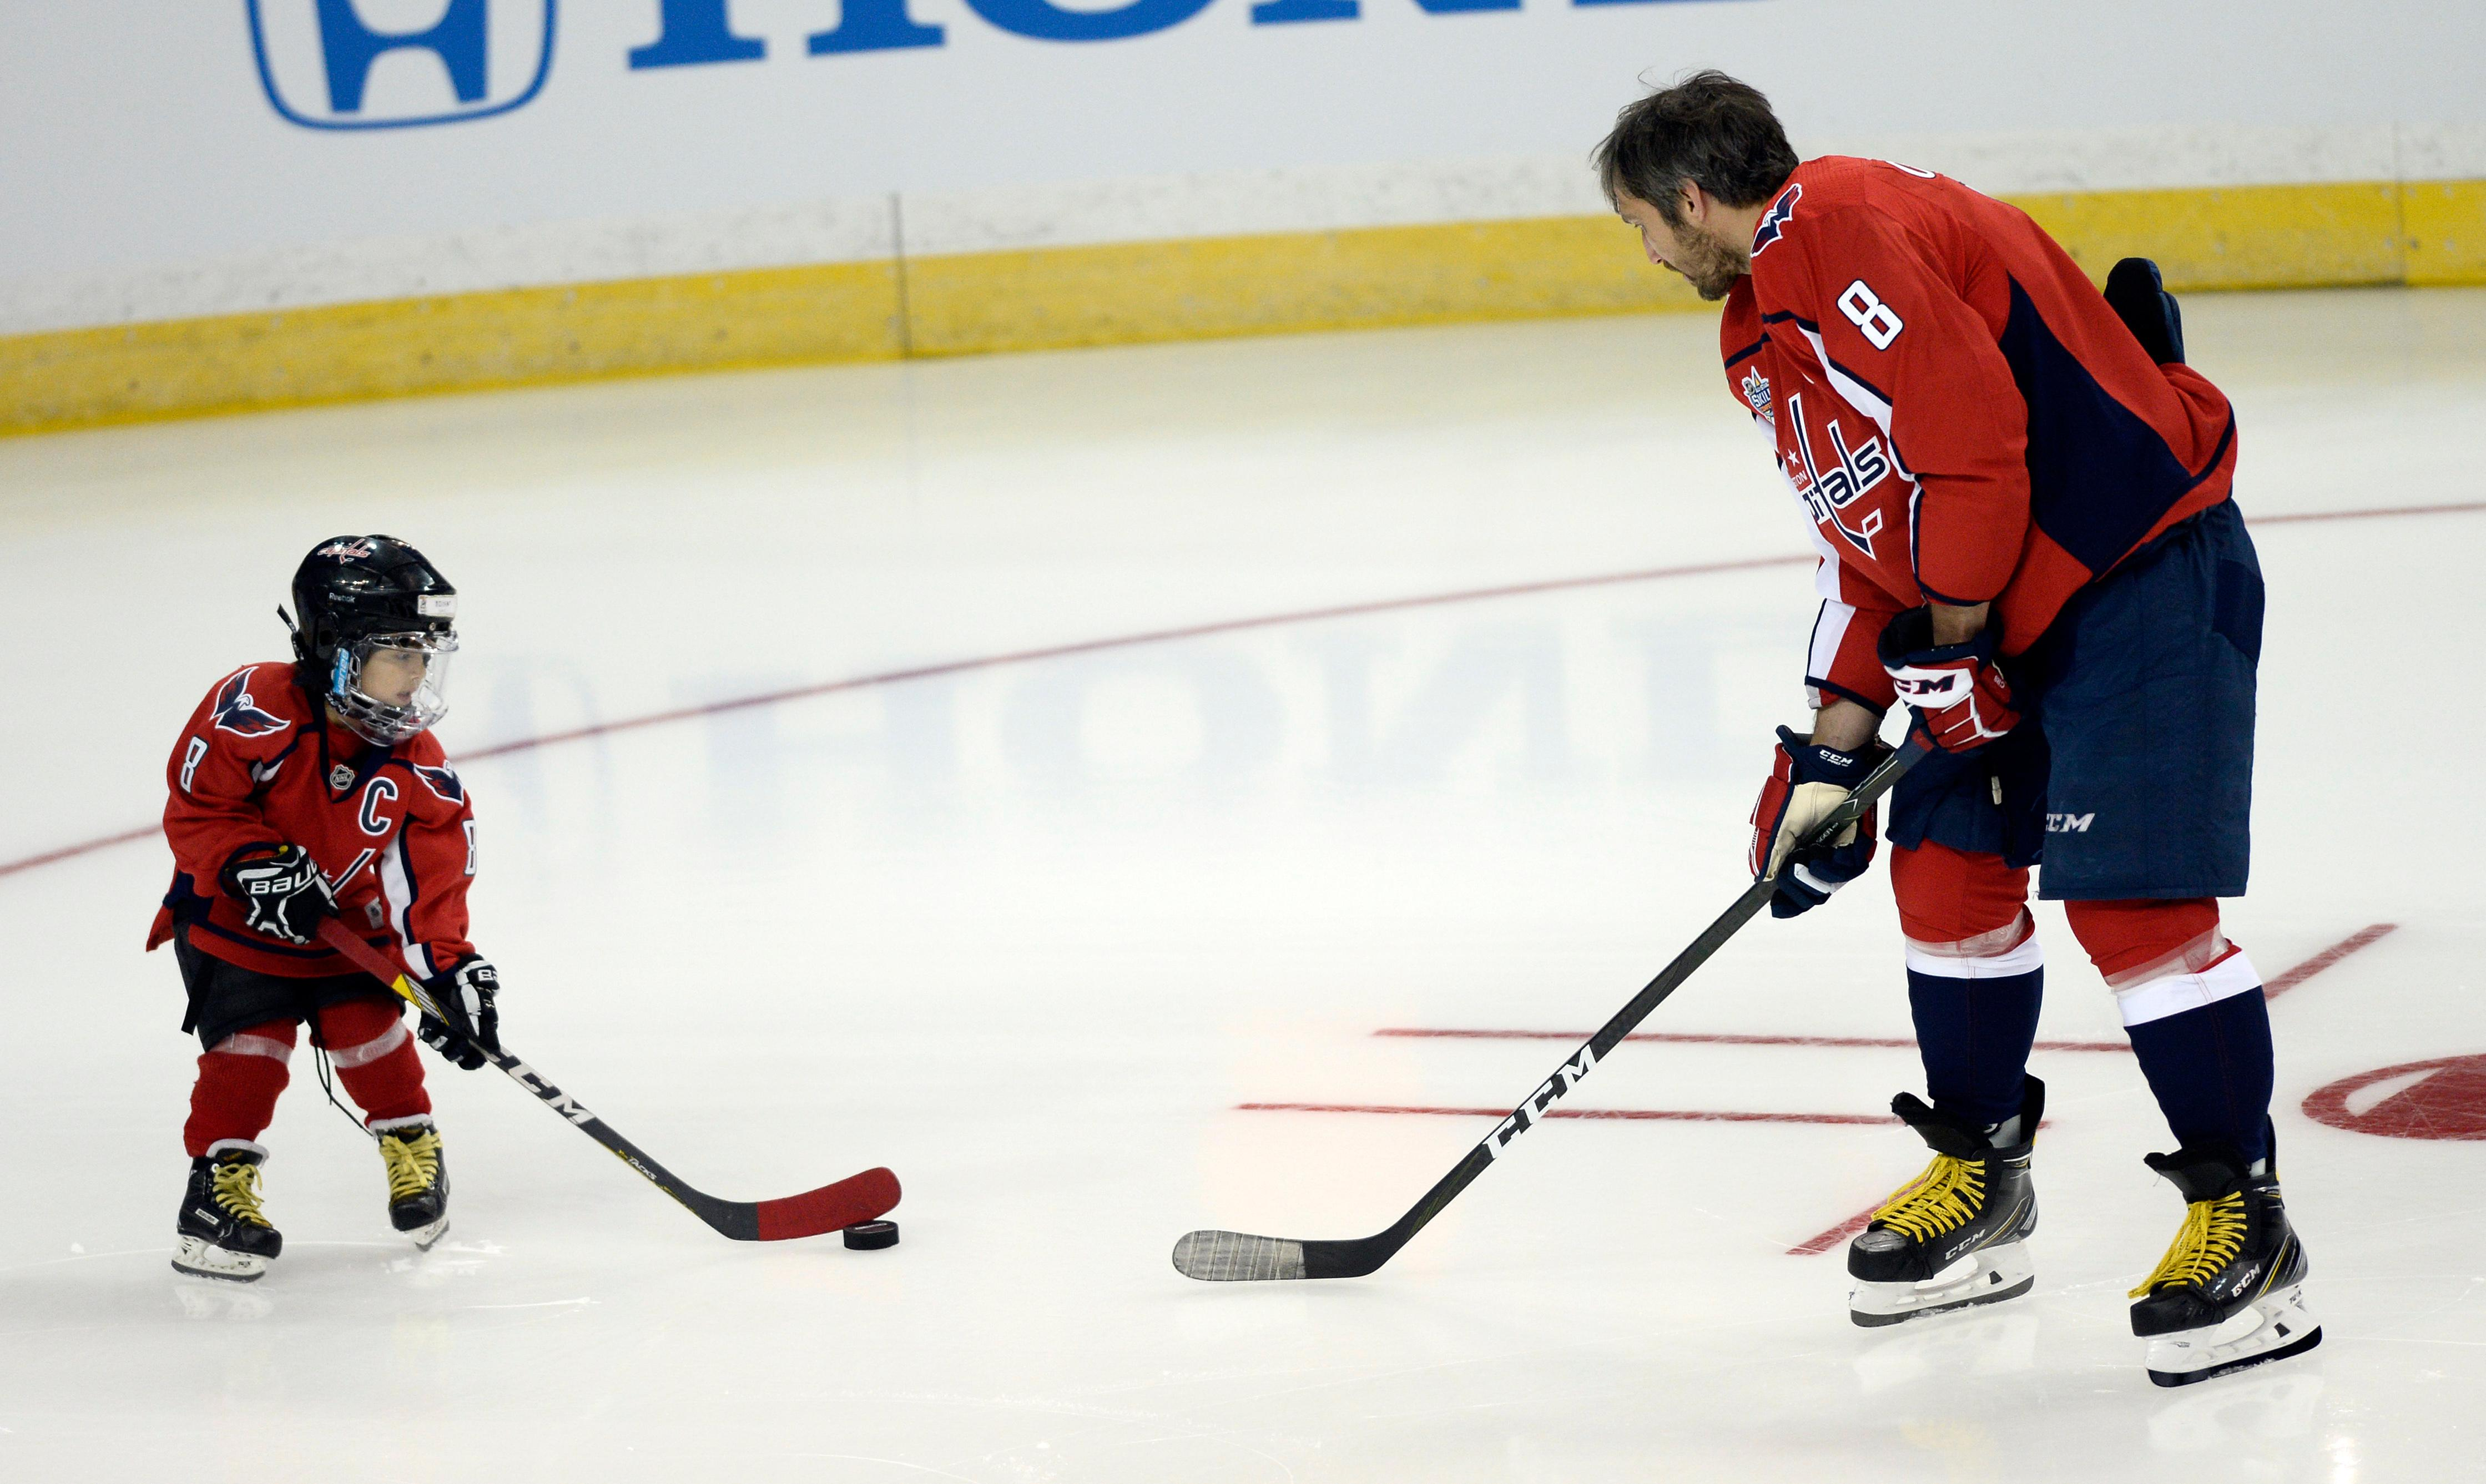 Washington Capitals forward Alexander Ovechkin (8) passes the puck to a young fan before the Skills Competition, part of the NHL All-Star Game events, Saturday, Jan. 27, 2018, in Tampa, Fla. (AP Photo/Jason Behnken)